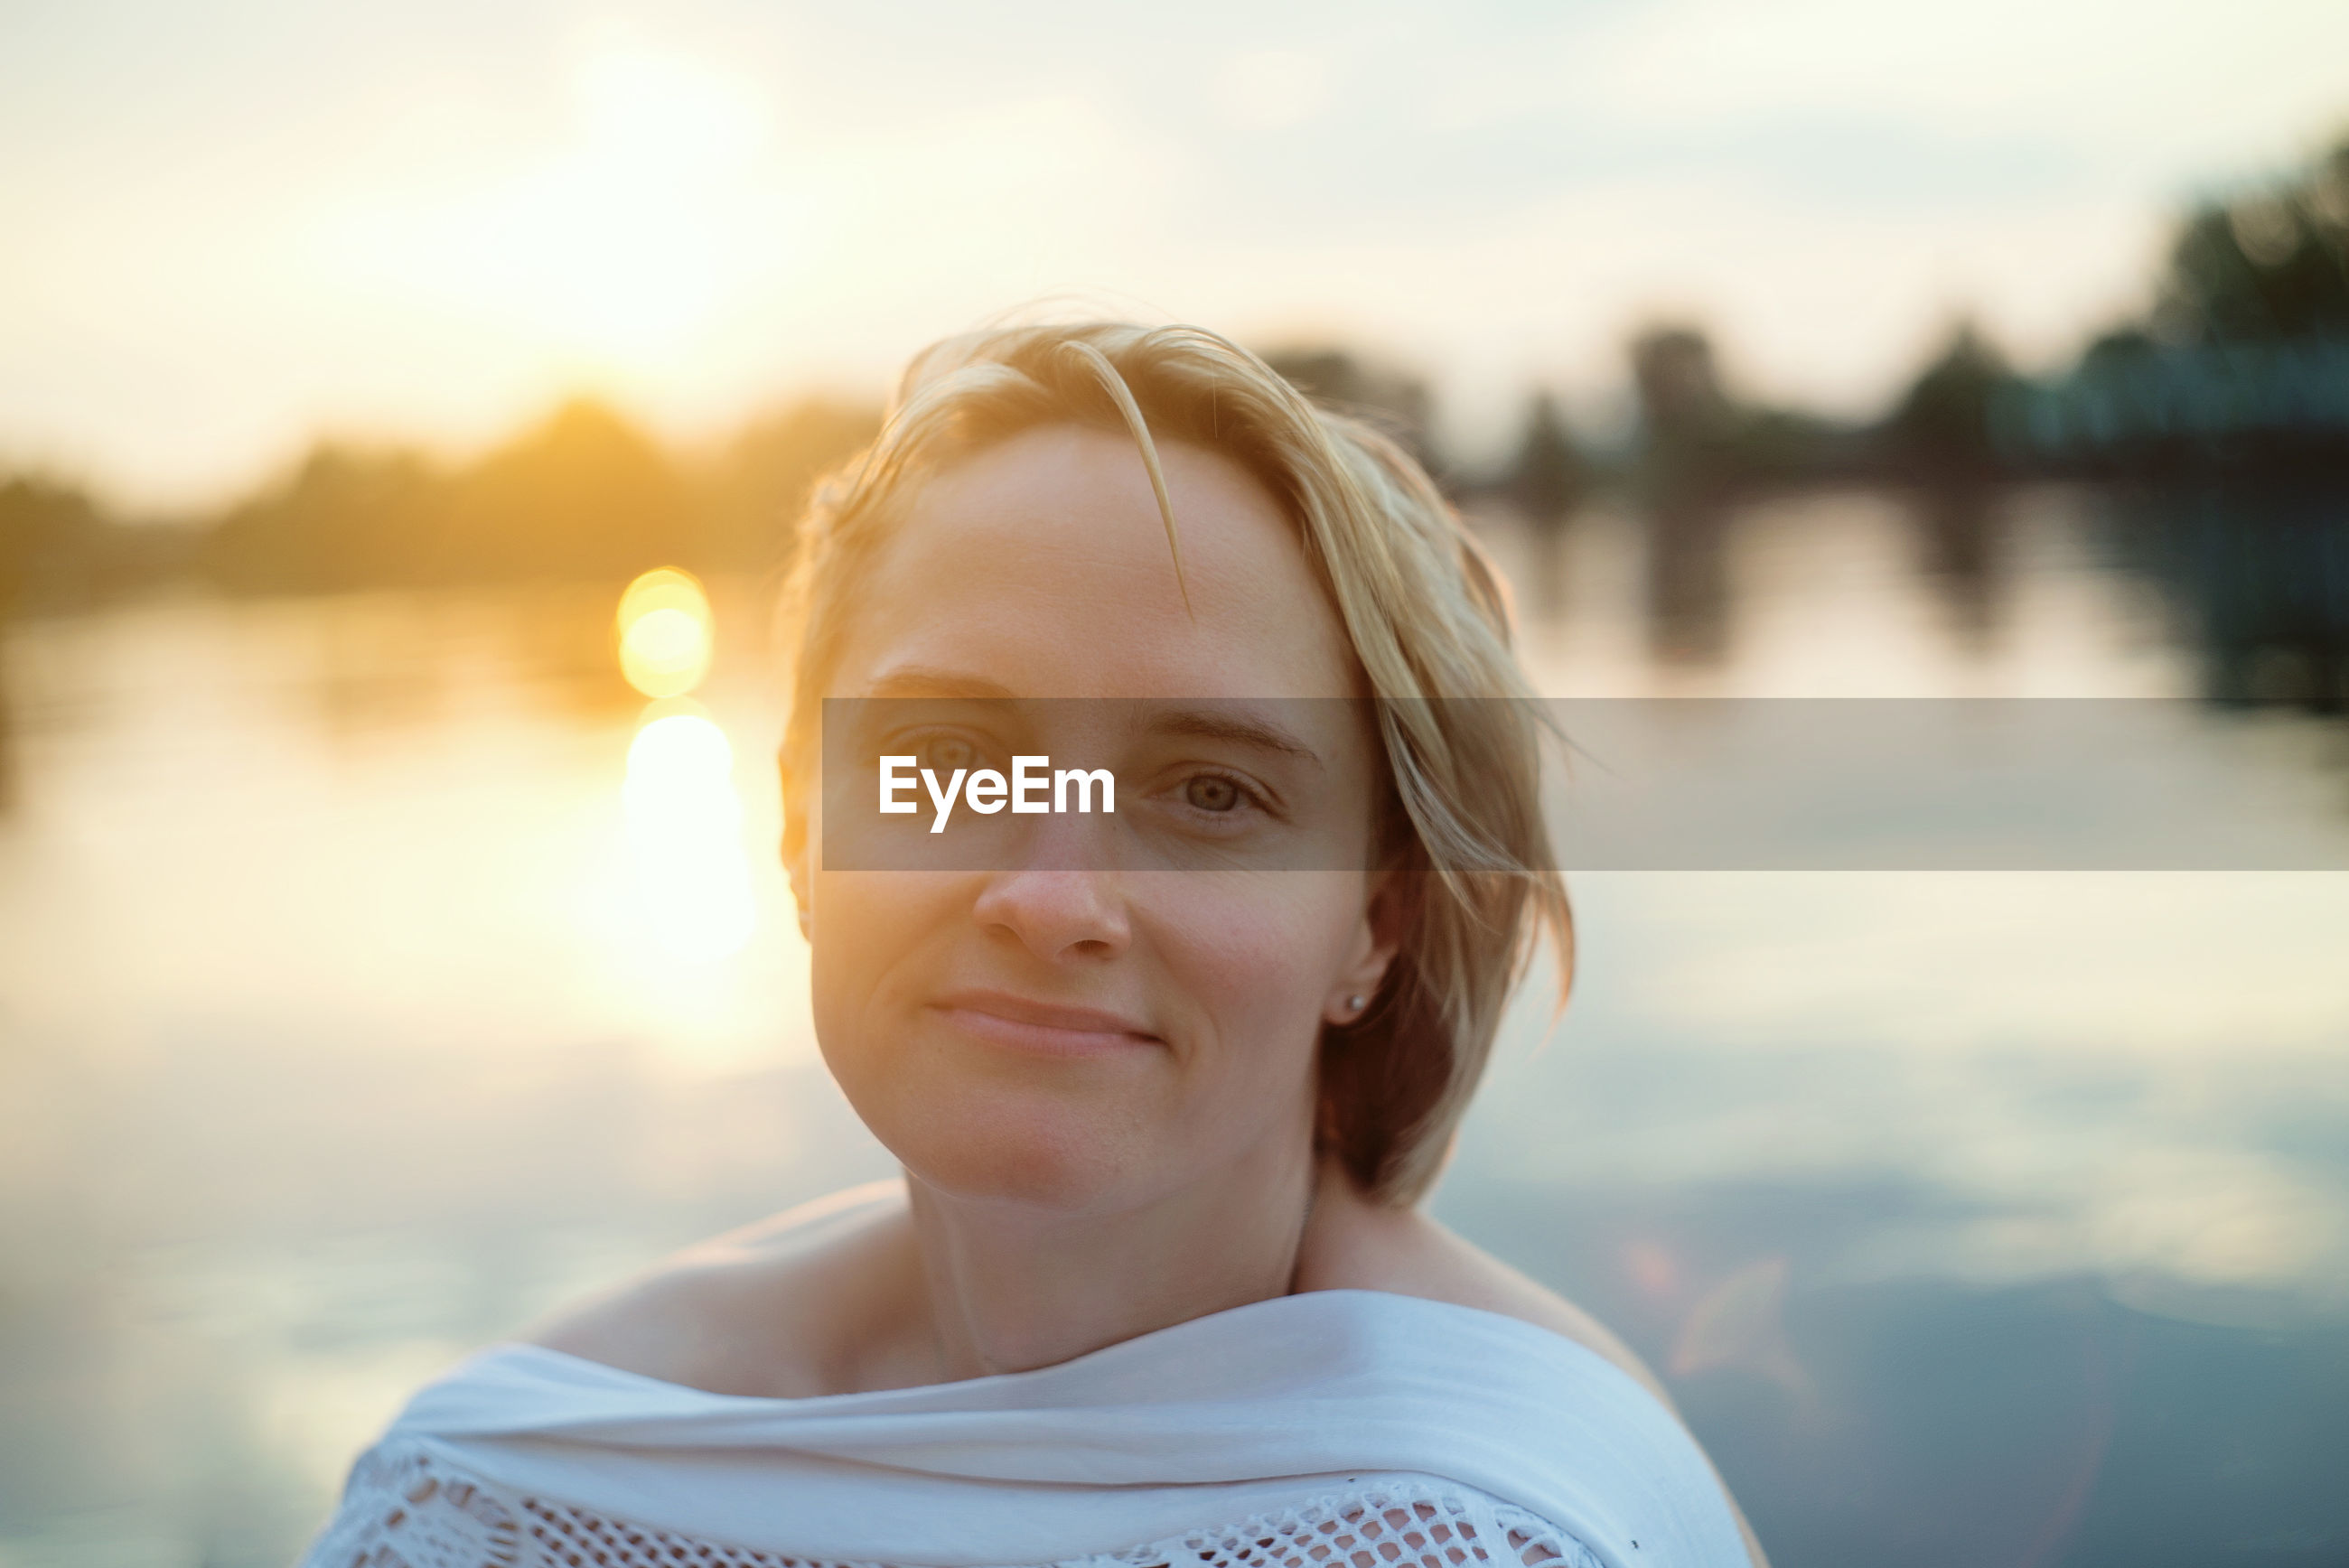 portrait, one person, water, headshot, female, portrait photography, blond hair, nature, smiling, lake, looking at camera, sunlight, women, sky, sunset, person, emotion, happiness, adult, focus on foreground, lens flare, hairstyle, child, back lit, blue, casual clothing, leisure activity, lifestyles, outdoors, front view, reflection, day, human face, childhood, young adult, relaxation, summer, skin, trip, vacation, standing, copy space